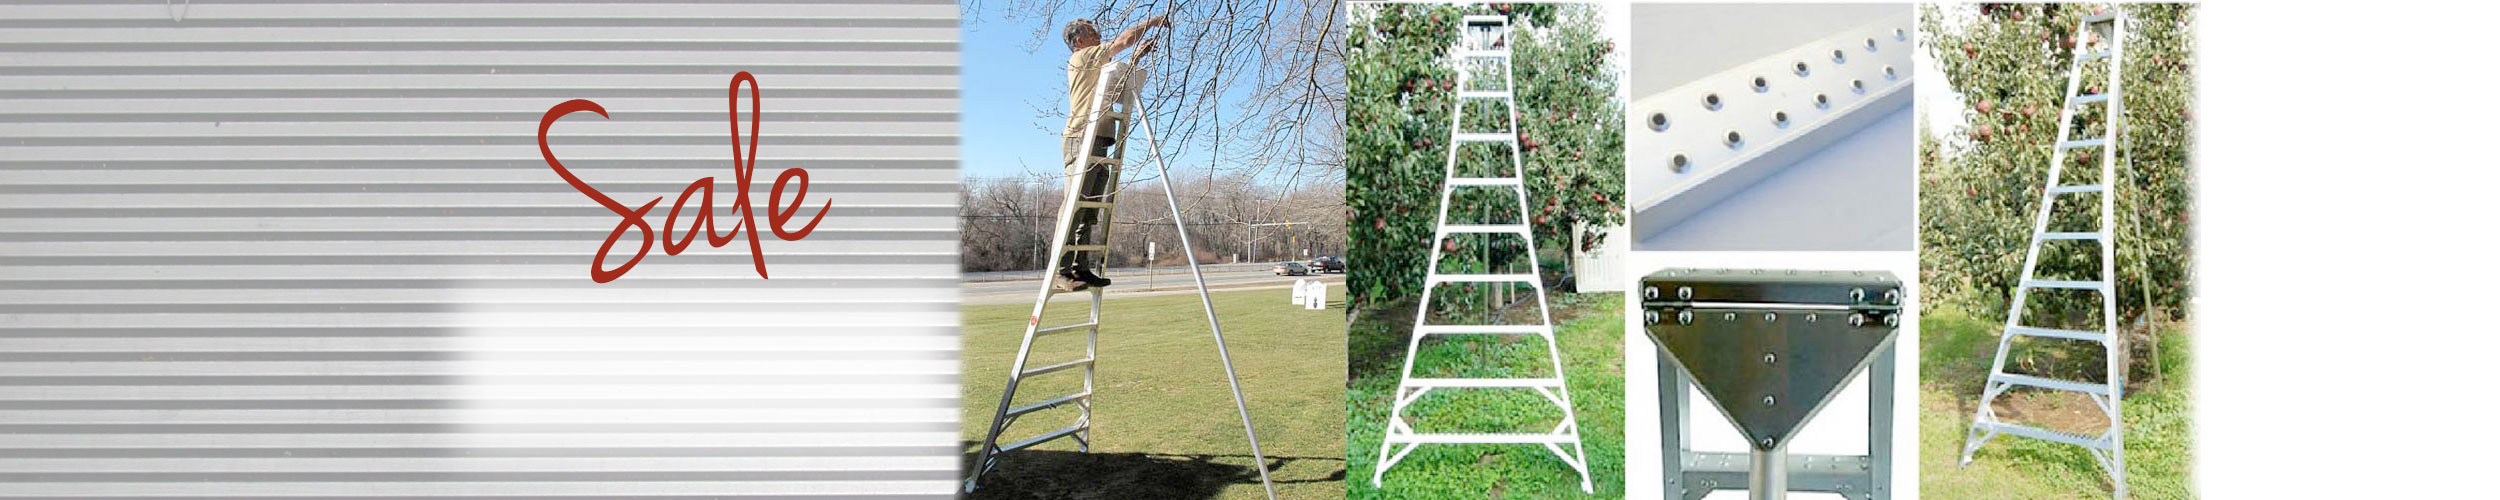 Aluminum Orchard Ladders Sale